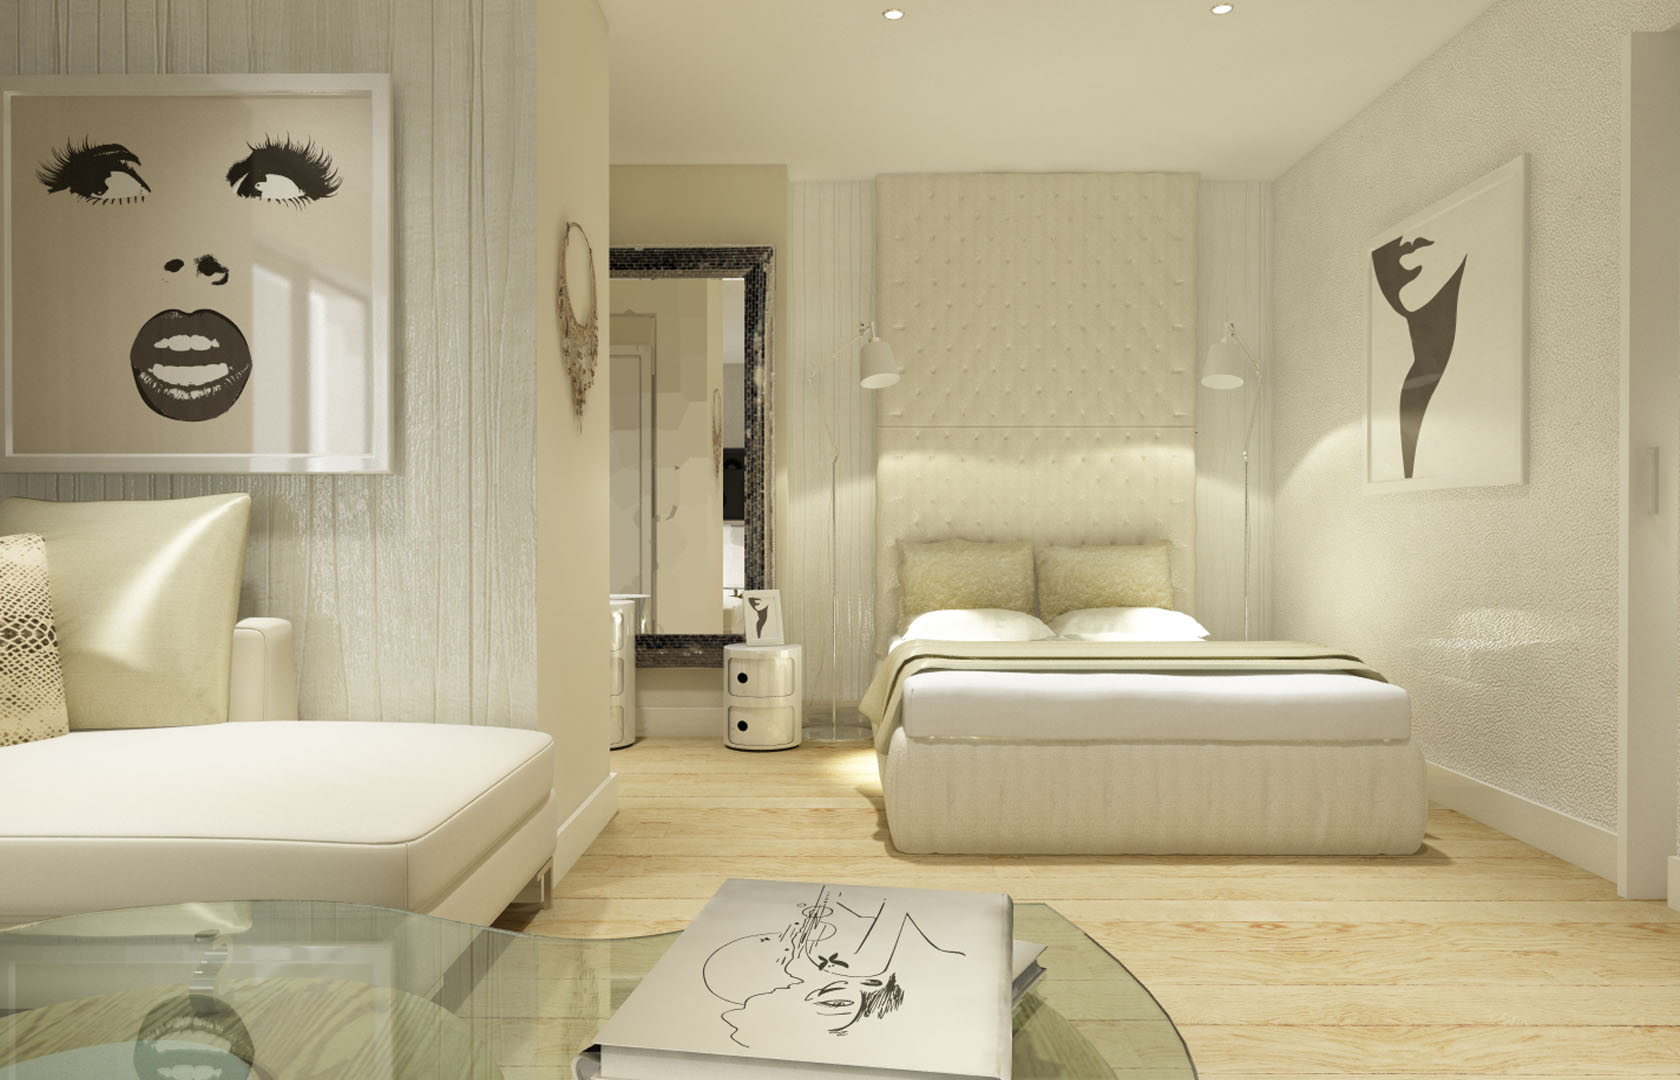 25 Great Interiors Design For The Home: Living Rooms Designing, Decoration: Gurgaon Interiors